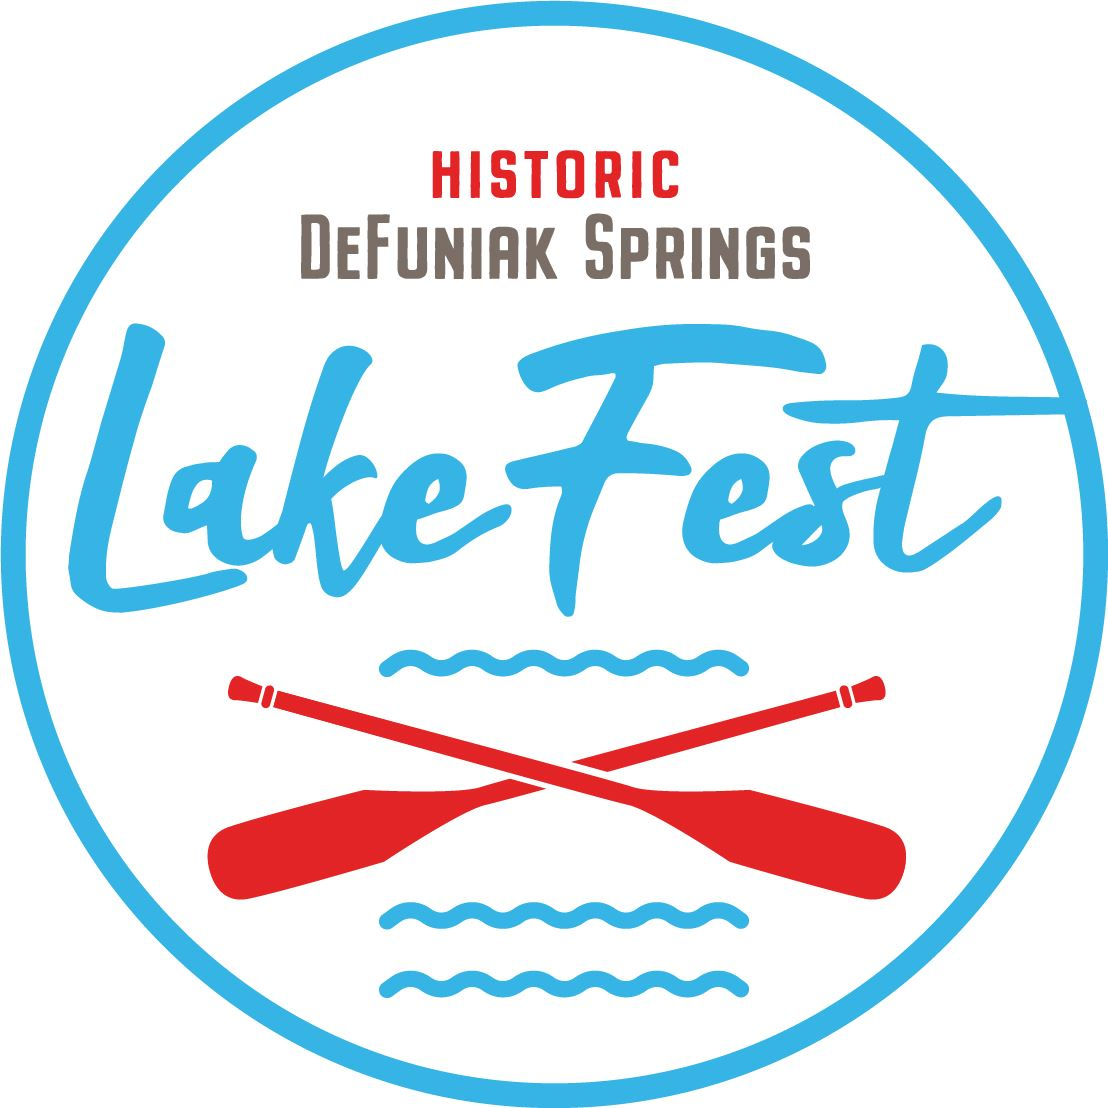 Circular logo with words Historic DeFuniak Springs LakeFest with two canoe oars crisscrossed